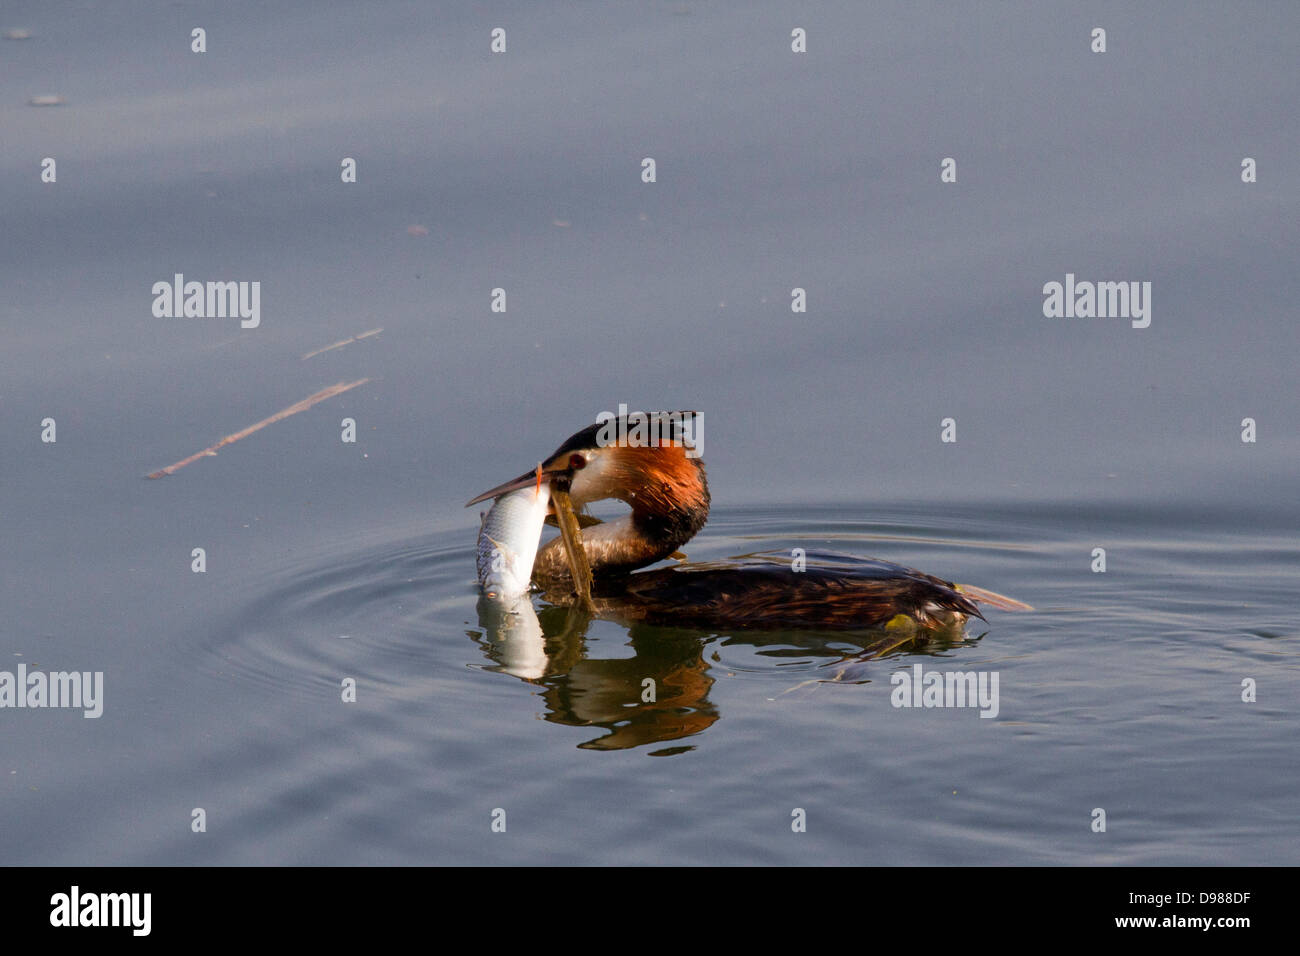 Great crested grebe (Podiceps cristatus) eating a fish, Berkshire, England, UK - Stock Image